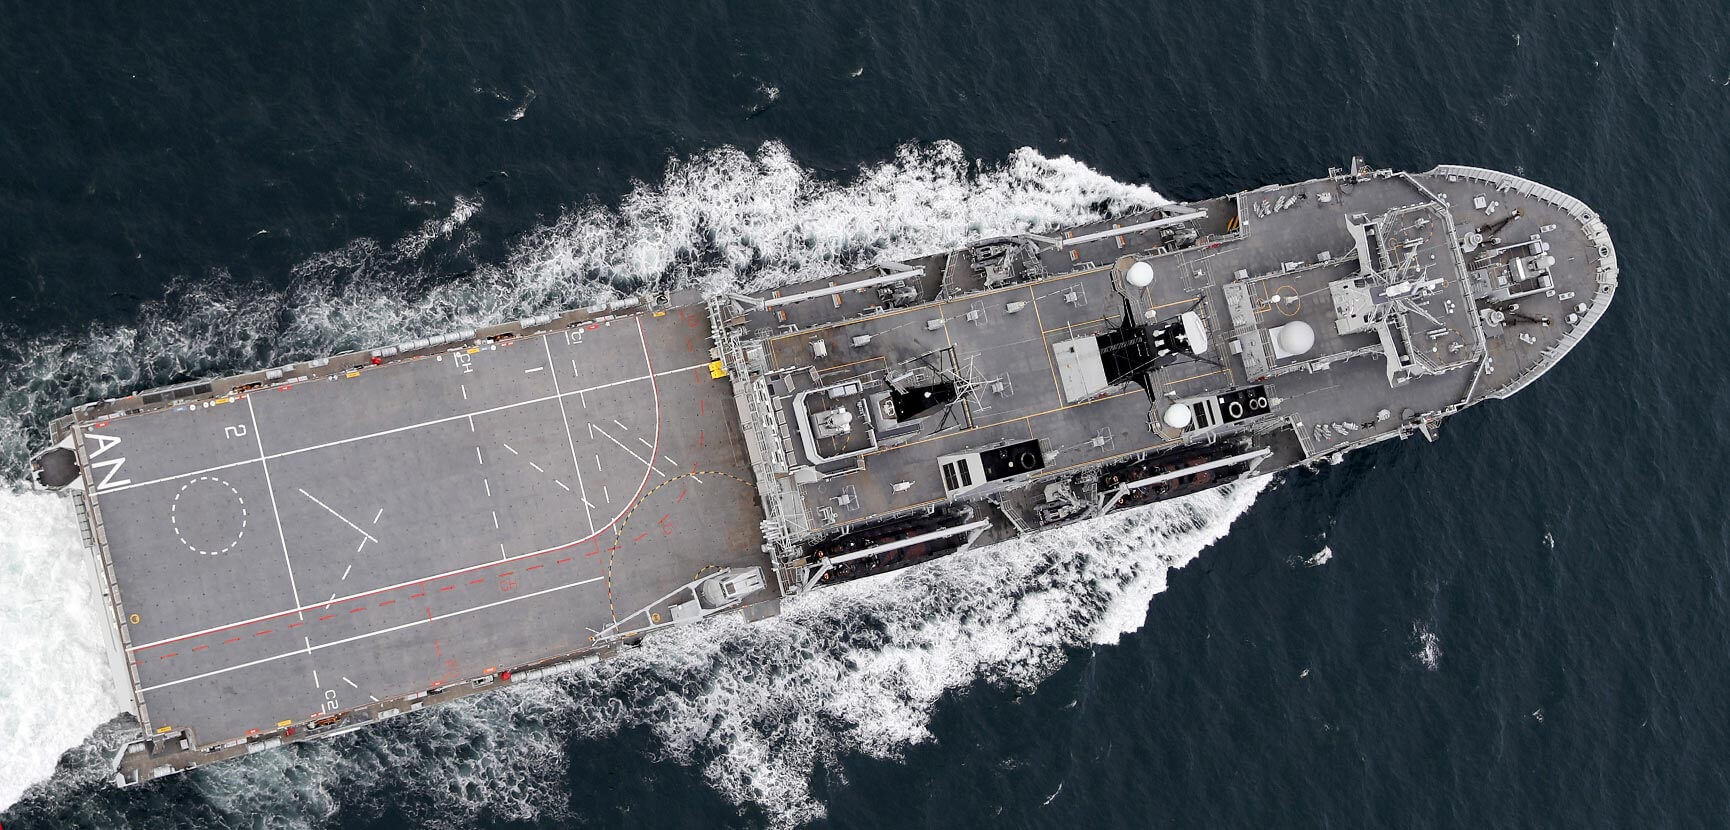 A continuous Royal Navy presence in the Pacific region this year